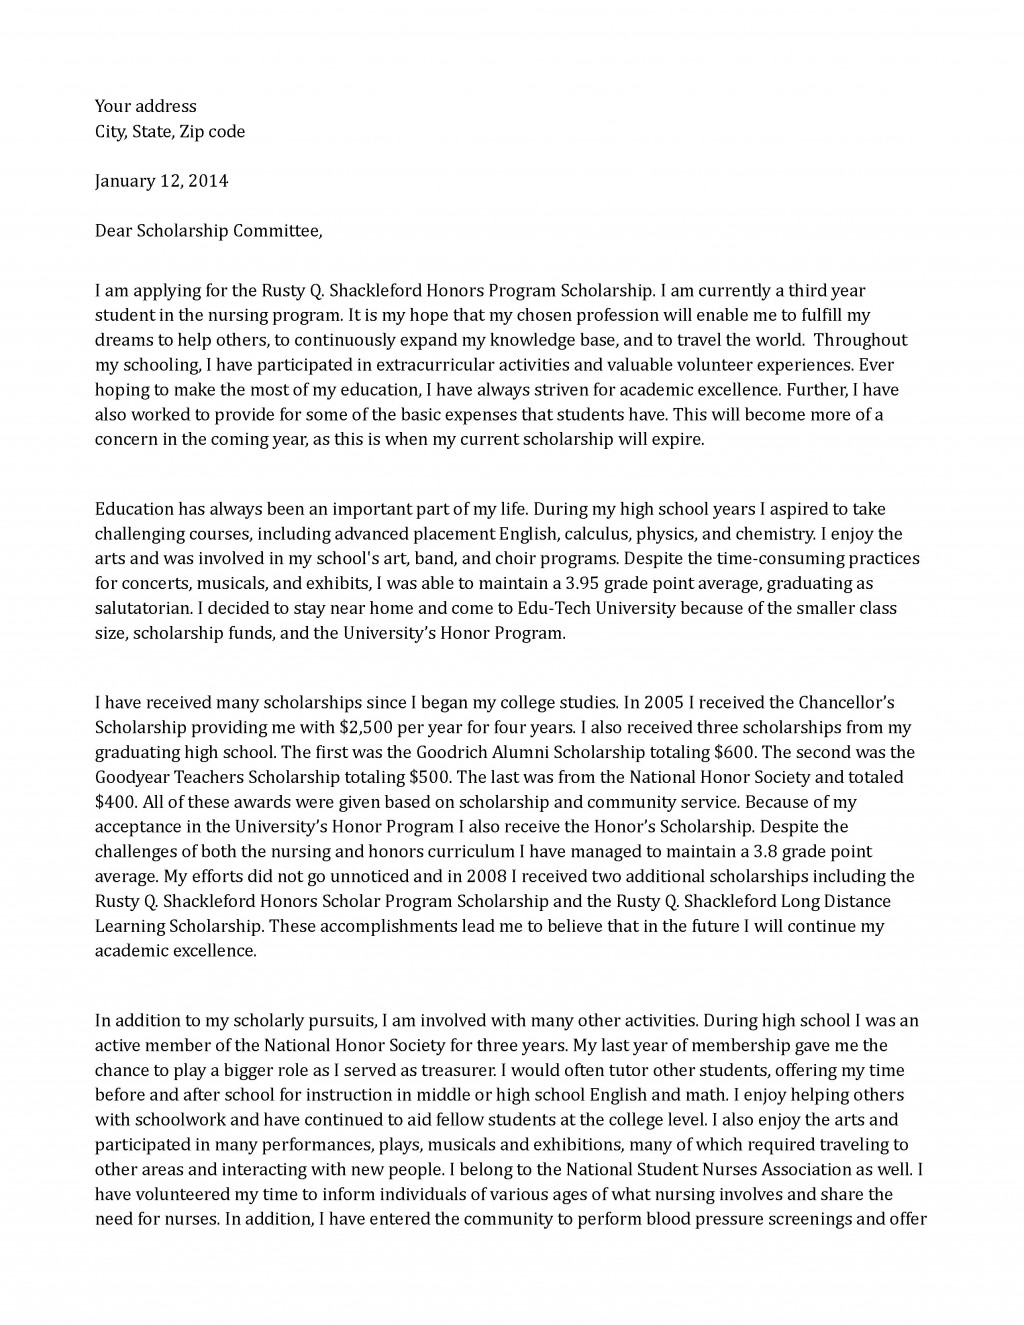 015 Scholarship Application Essay Example Sample Honors Program Staggering Samples Why You Deserve Questions Large